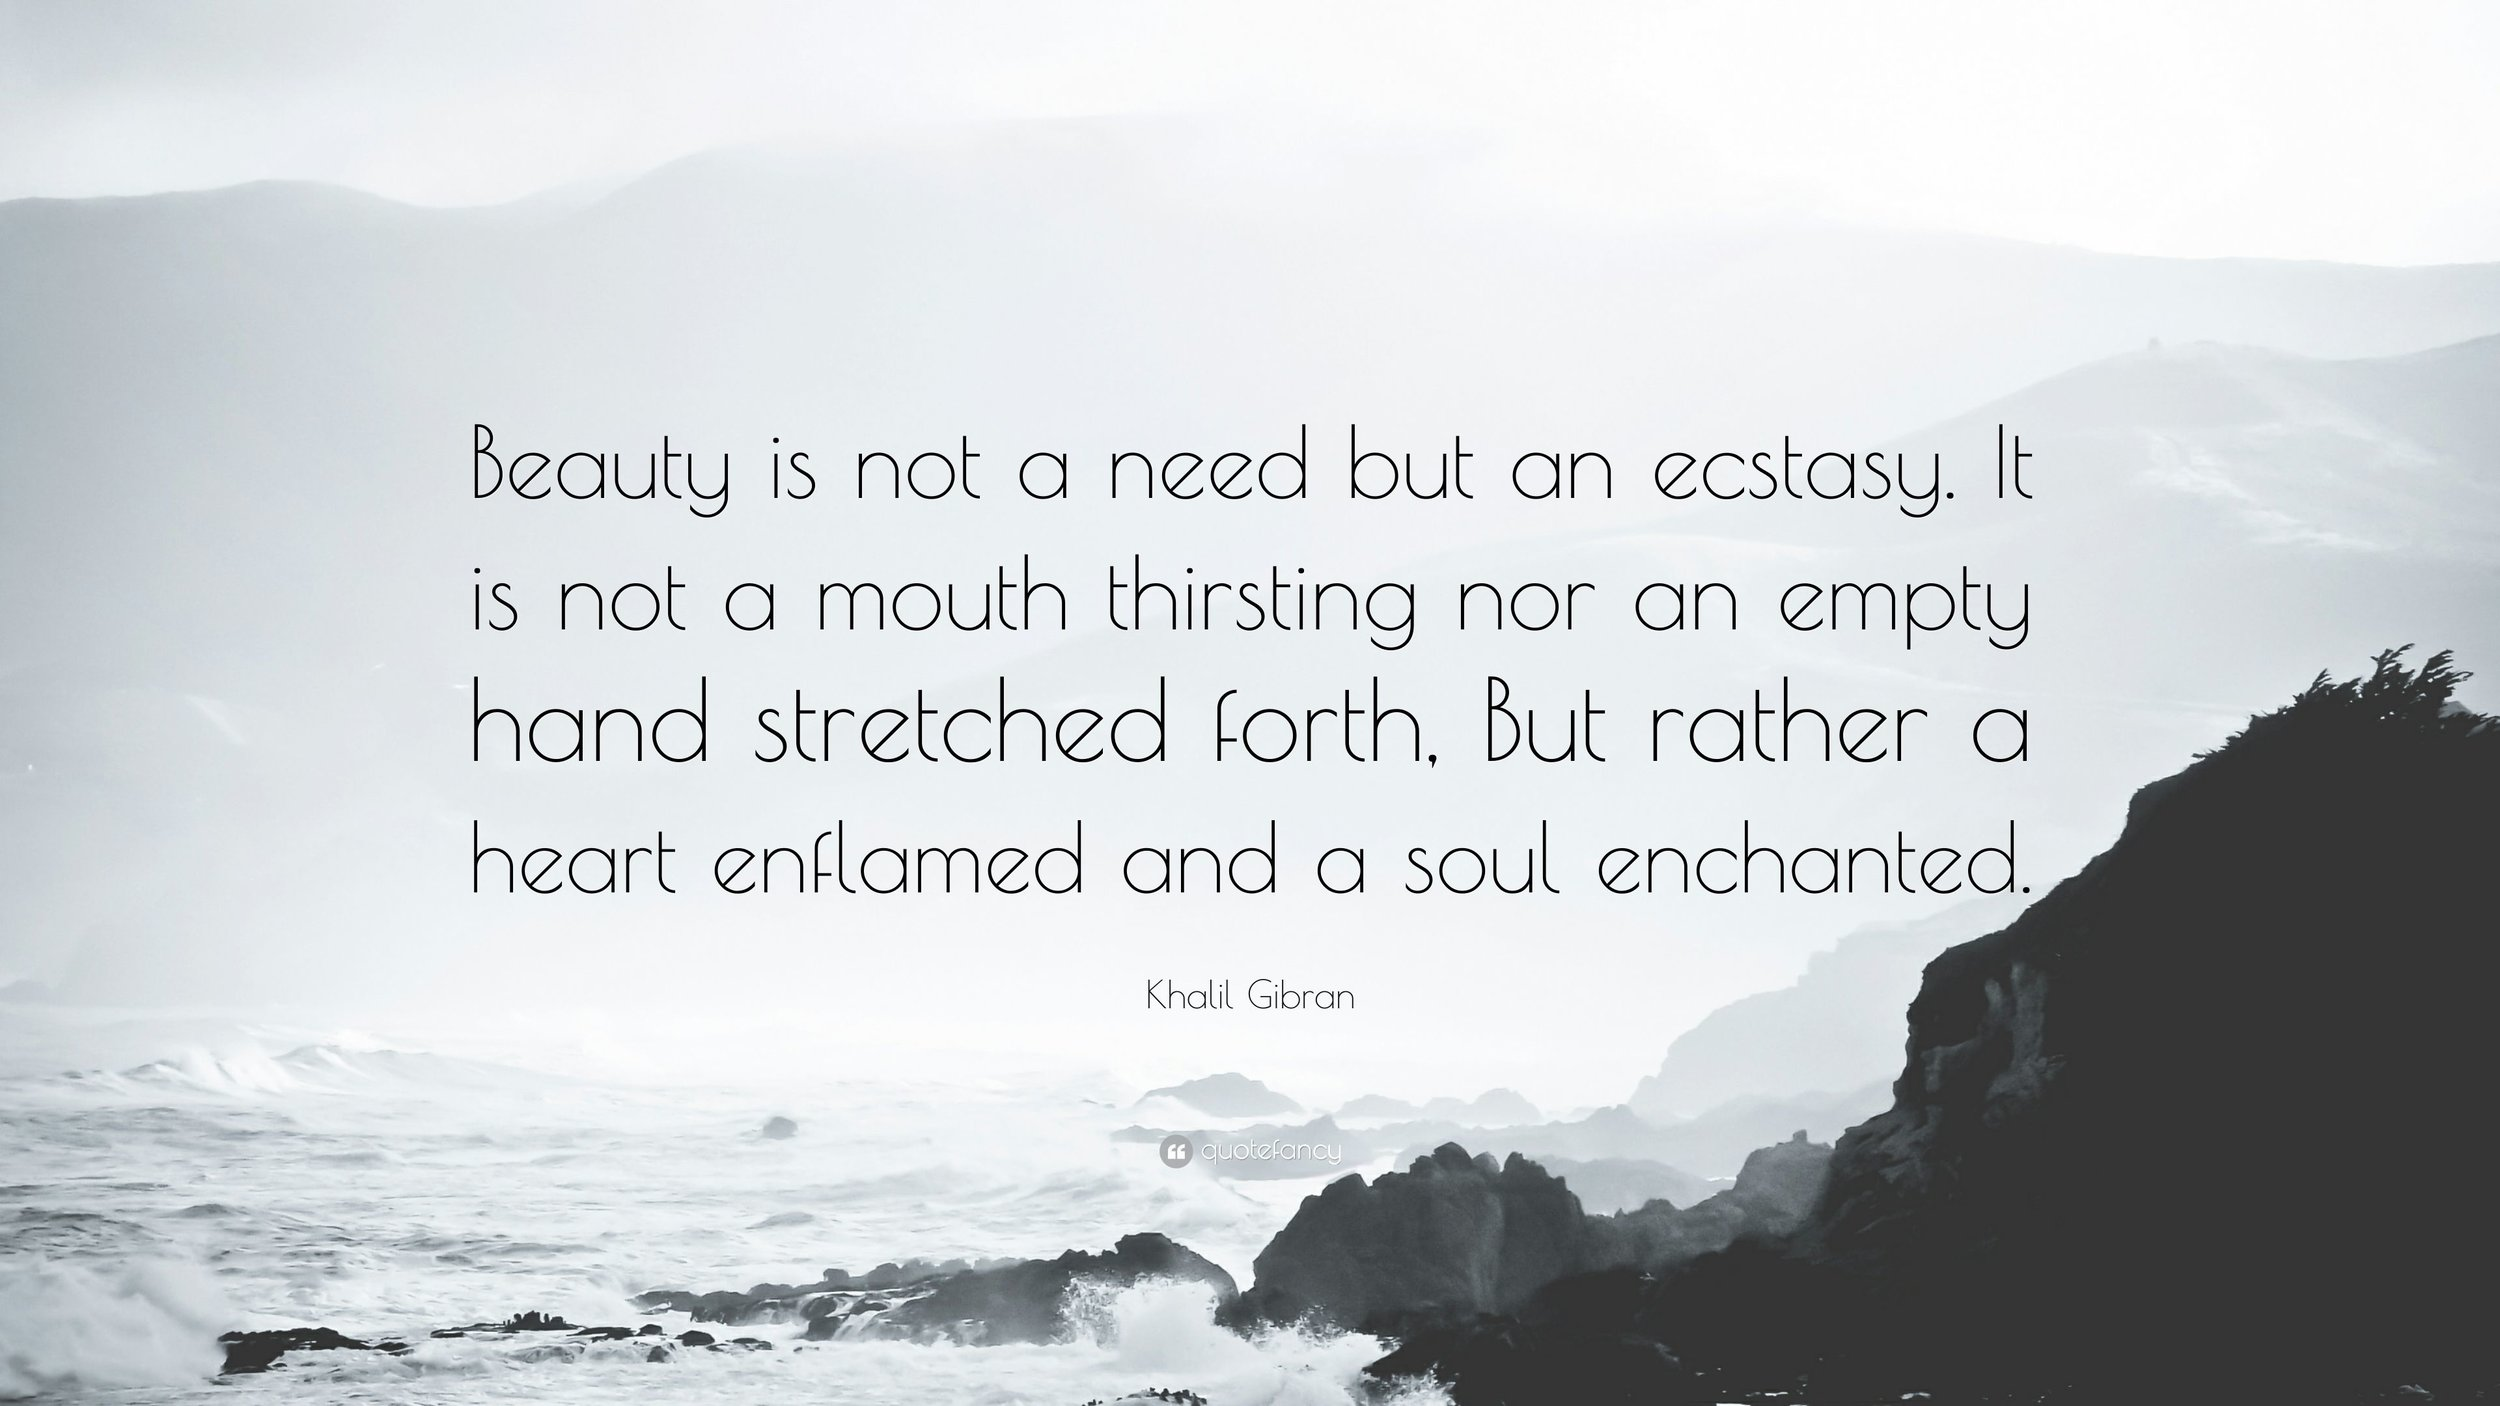 4911581-Khalil-Gibran-Quote-Beauty-is-not-a-need-but-an-ecstasy-It-is-not.jpg